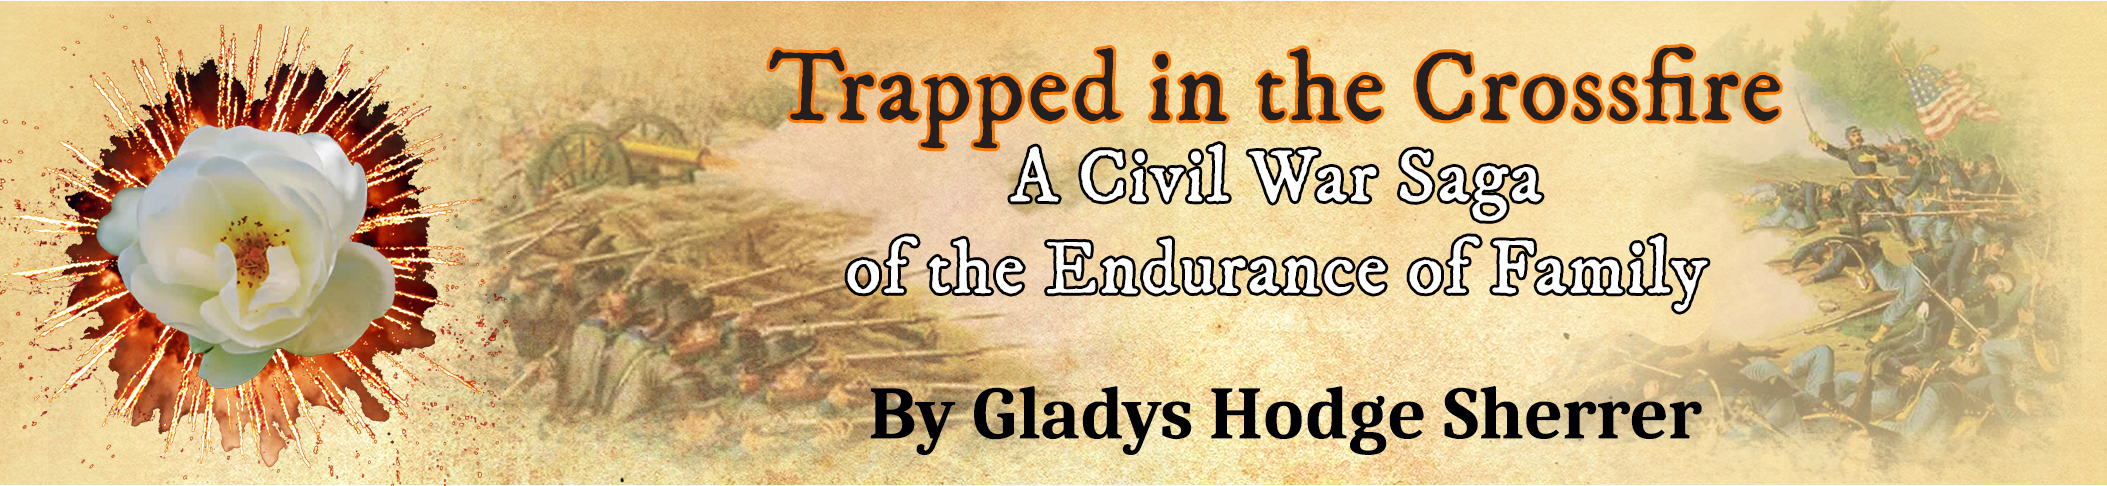 Trapped in the Crossfire by Gladys Hodge Sherrer, published by the Ardent Writer Press on October 1, 2017